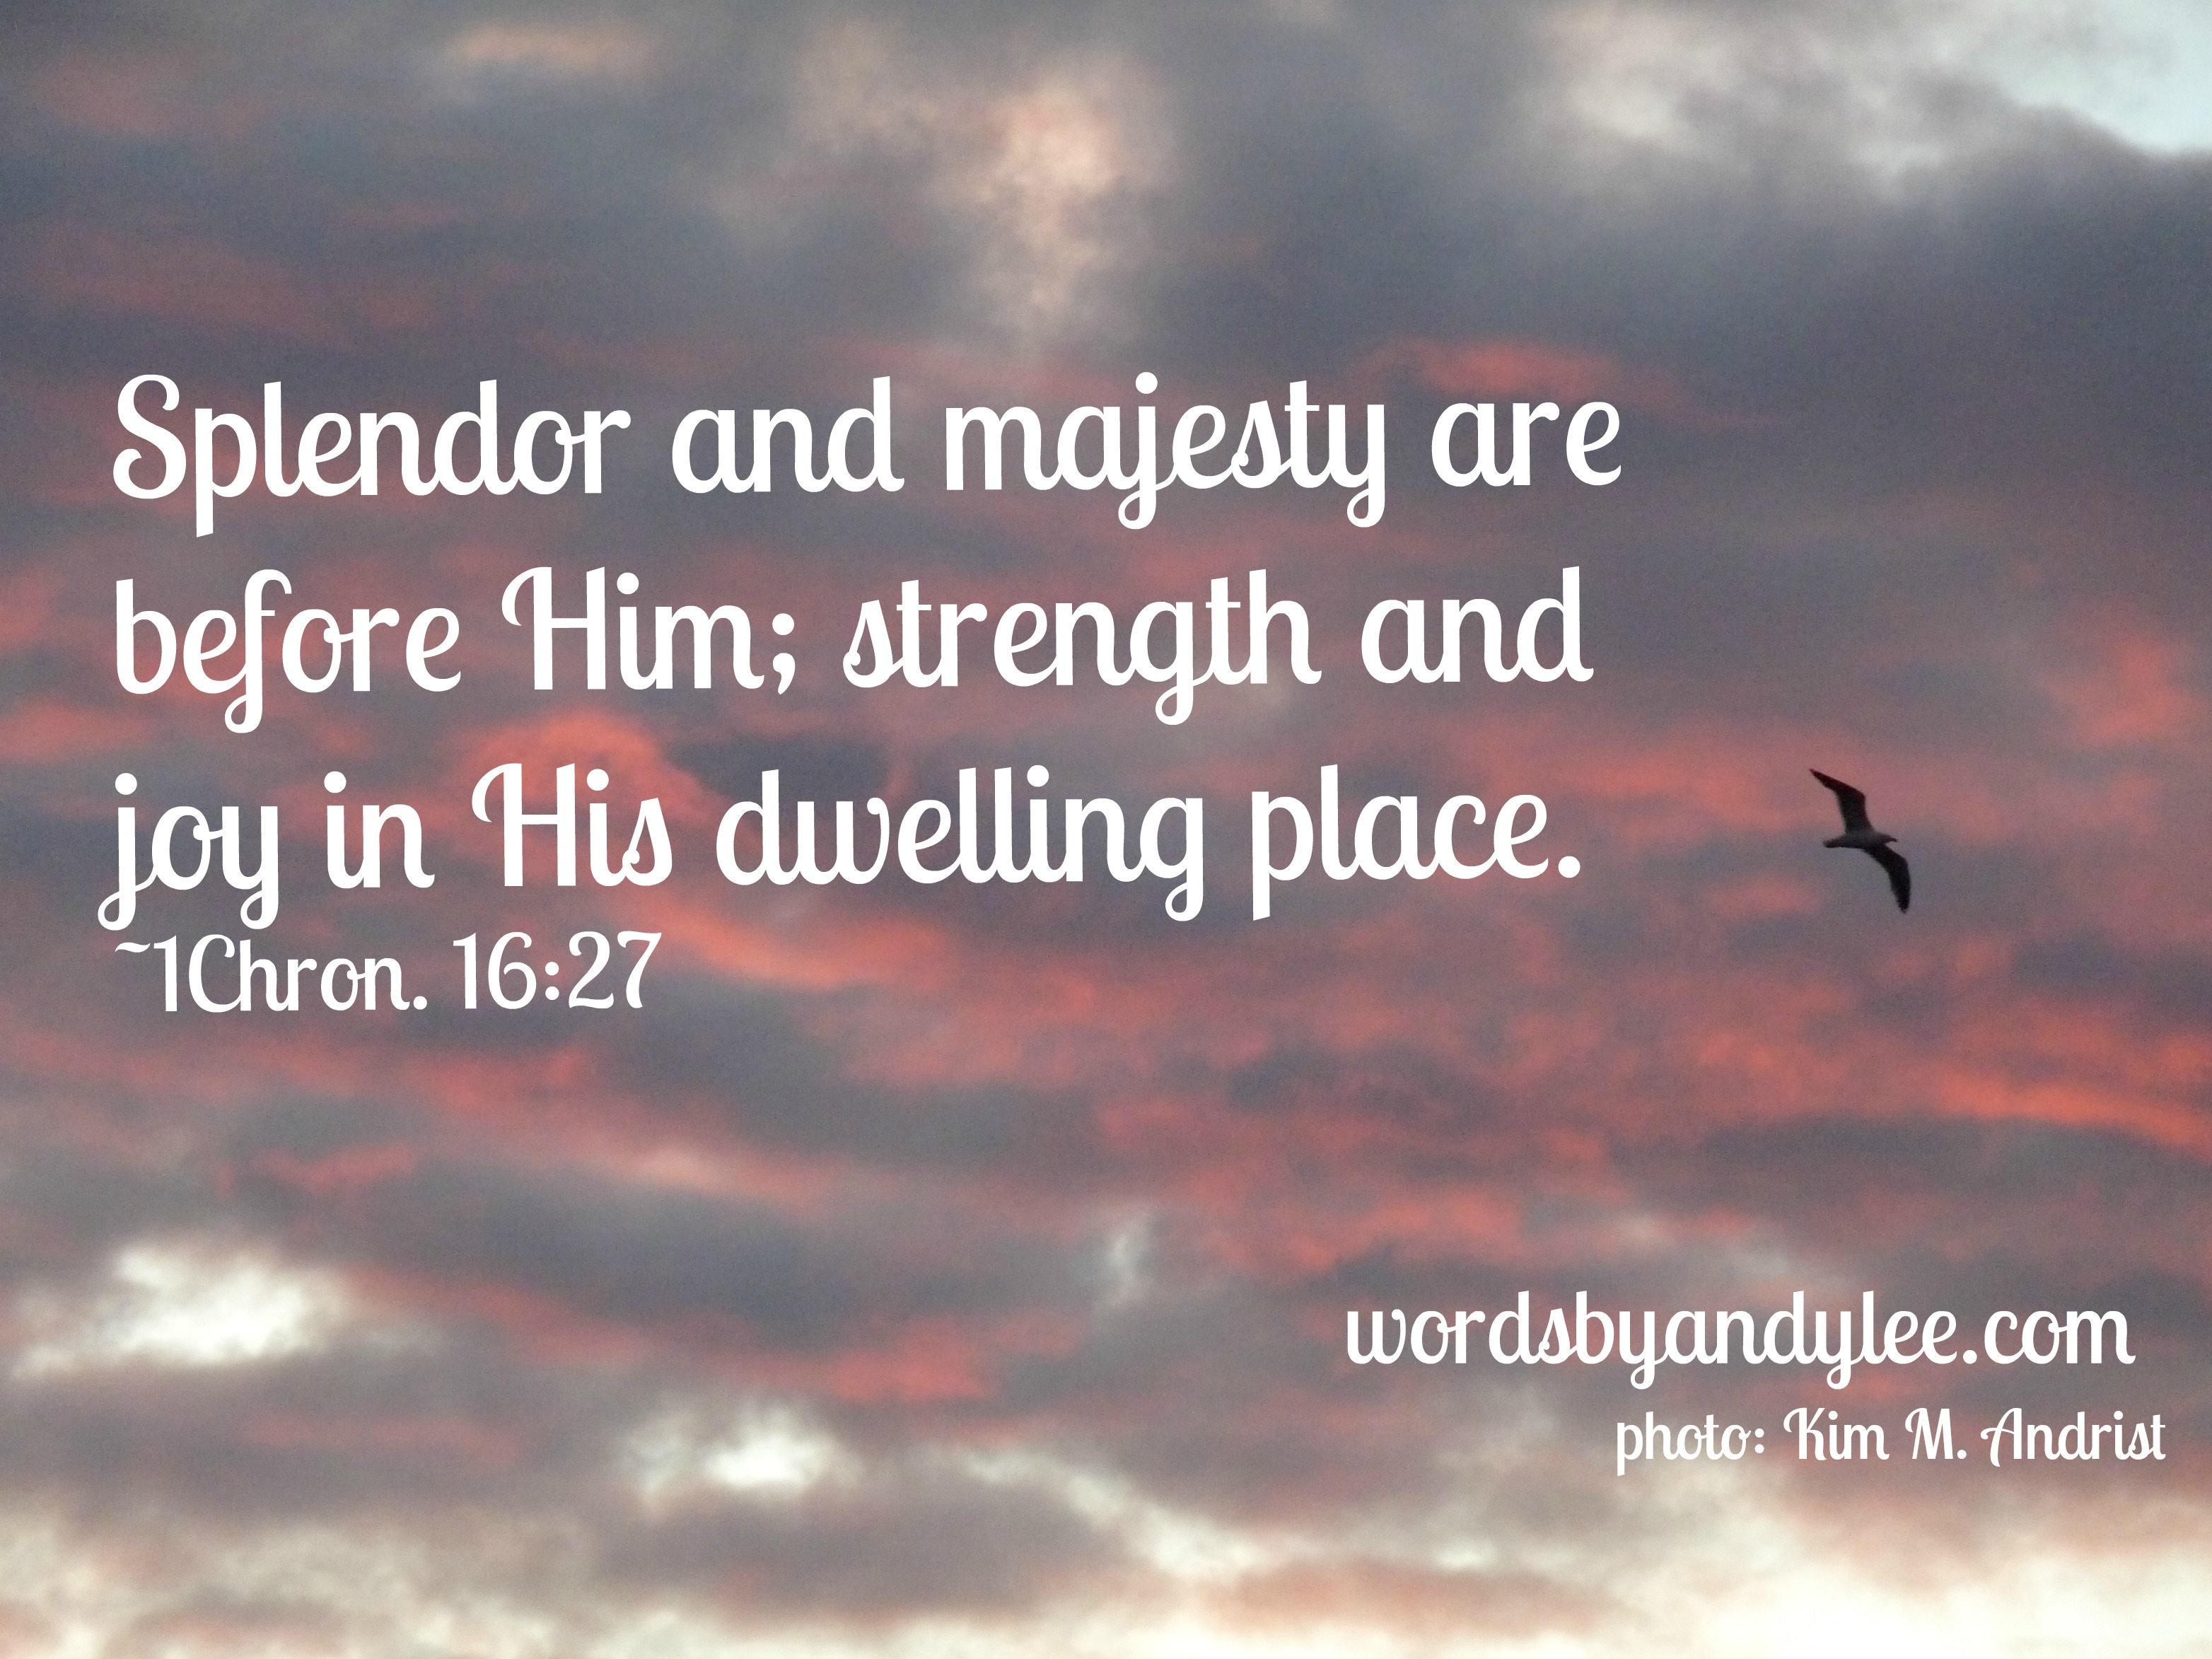 Where to find strength